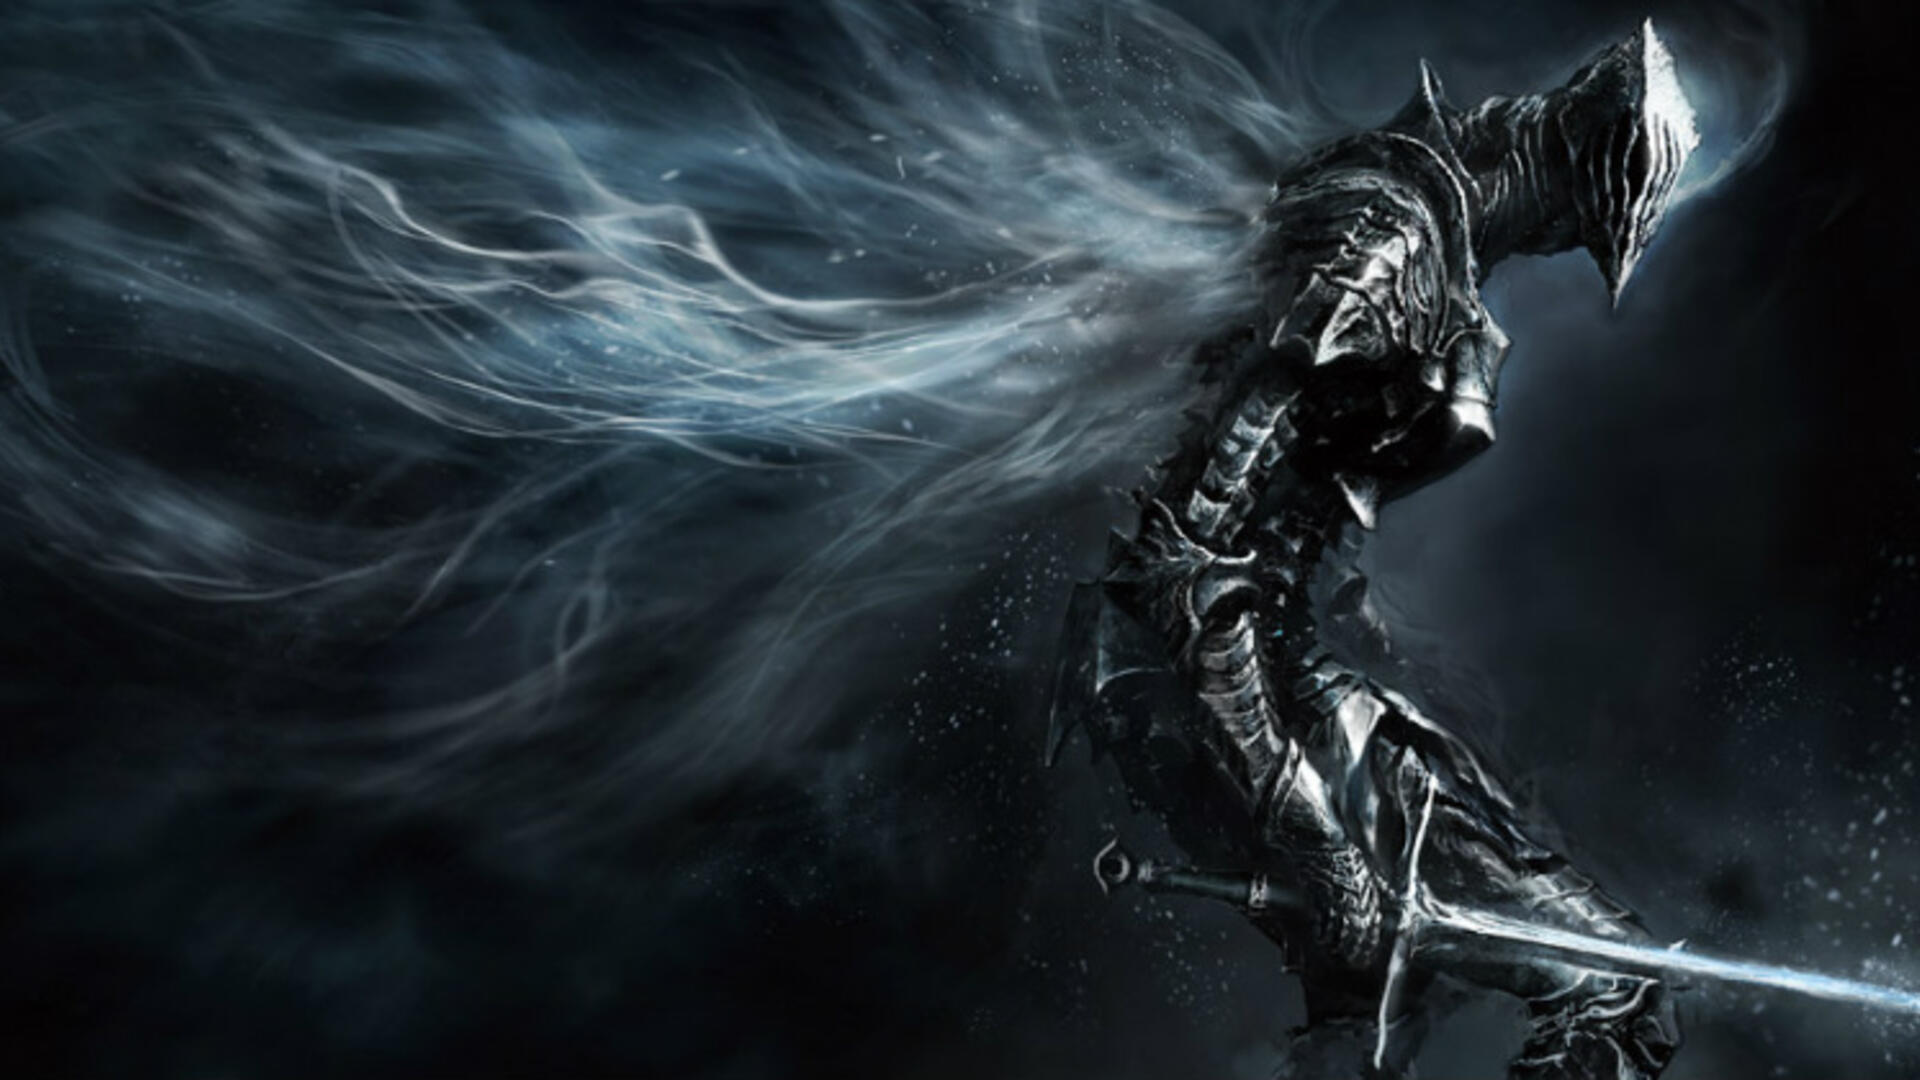 Dark Souls 3 Data Mine Reveals Cut Content, Including Unused Multiplayer Mode and Weapons